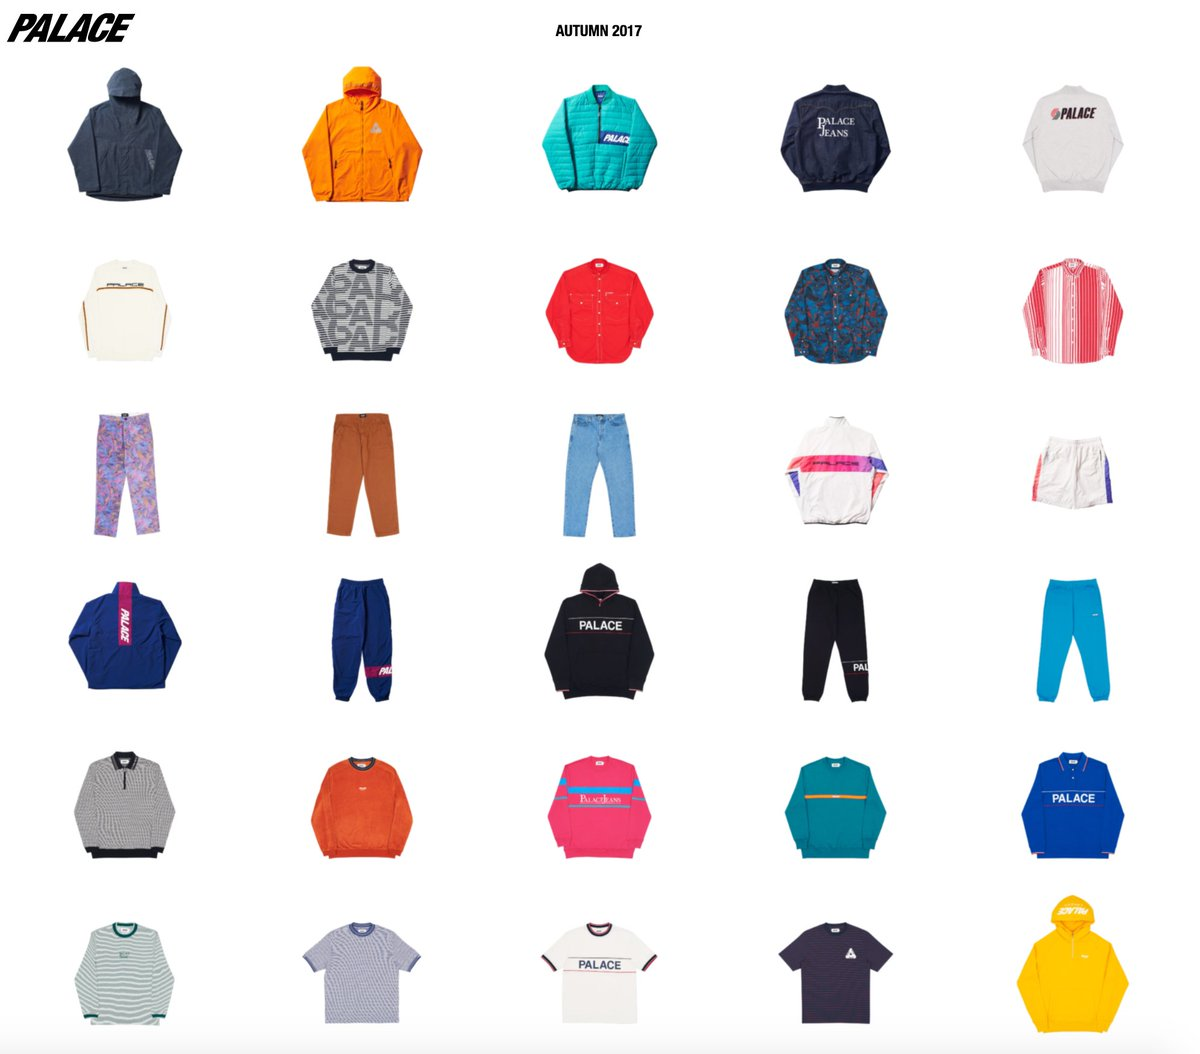 Palace Autumn 2017 Collection Drop  11 Am Est Gmt Range Https Www Palaceskateboards Com Range Autumn 2017